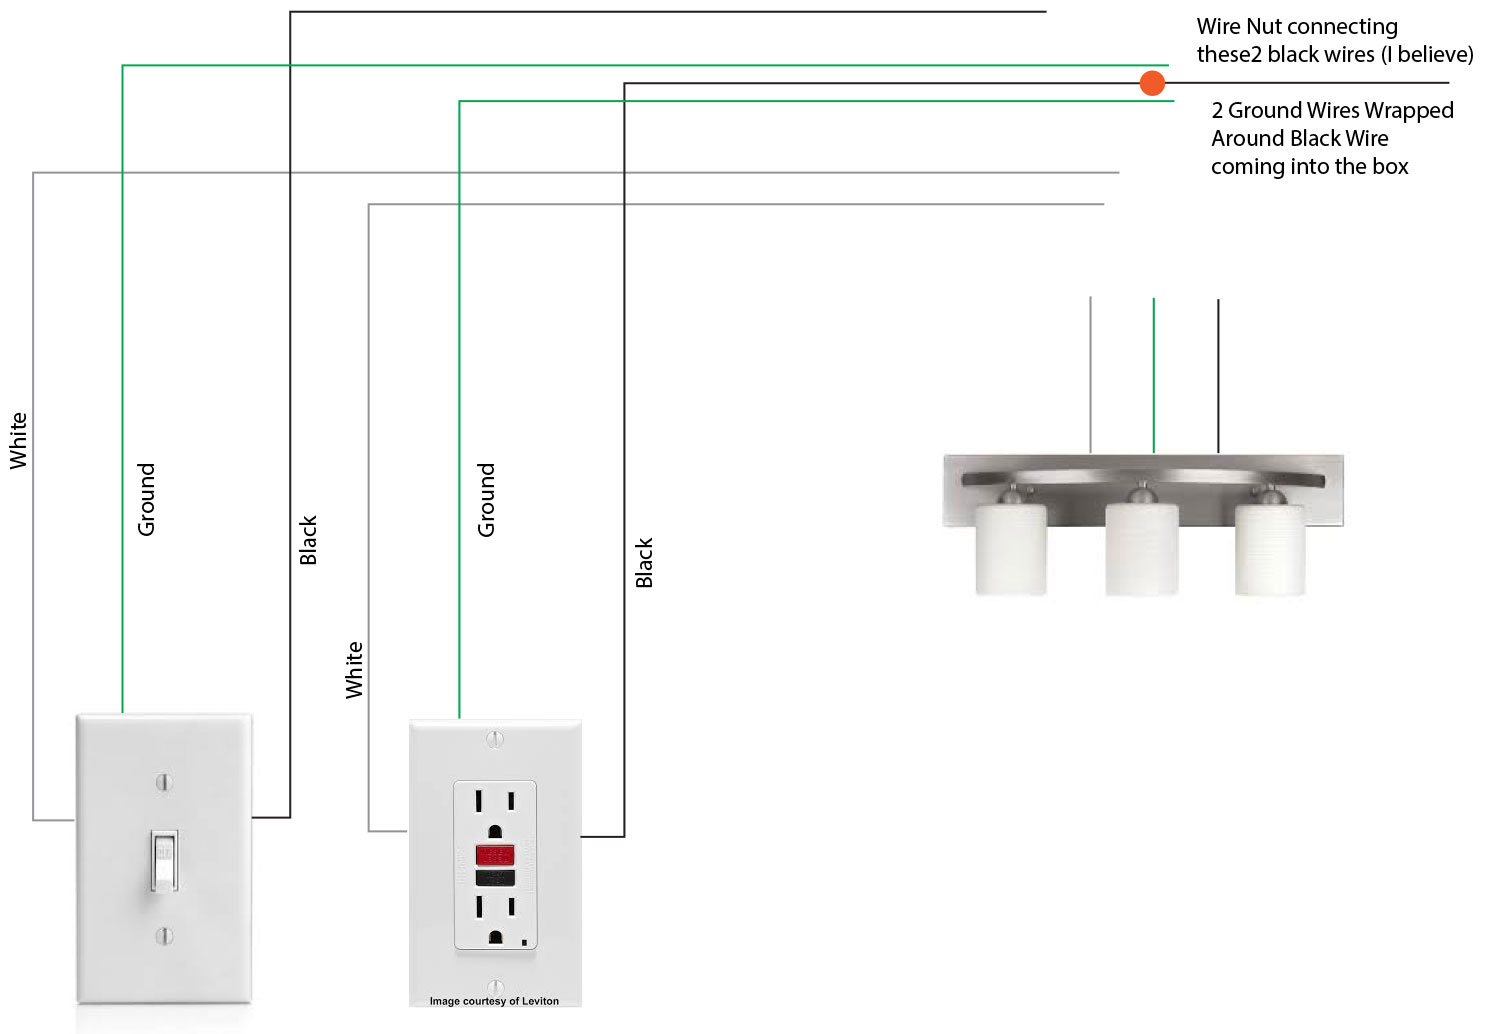 hight resolution of wiring in the home switch conversion gfci receptacle wire nuts electrical wiring home gfci outlet